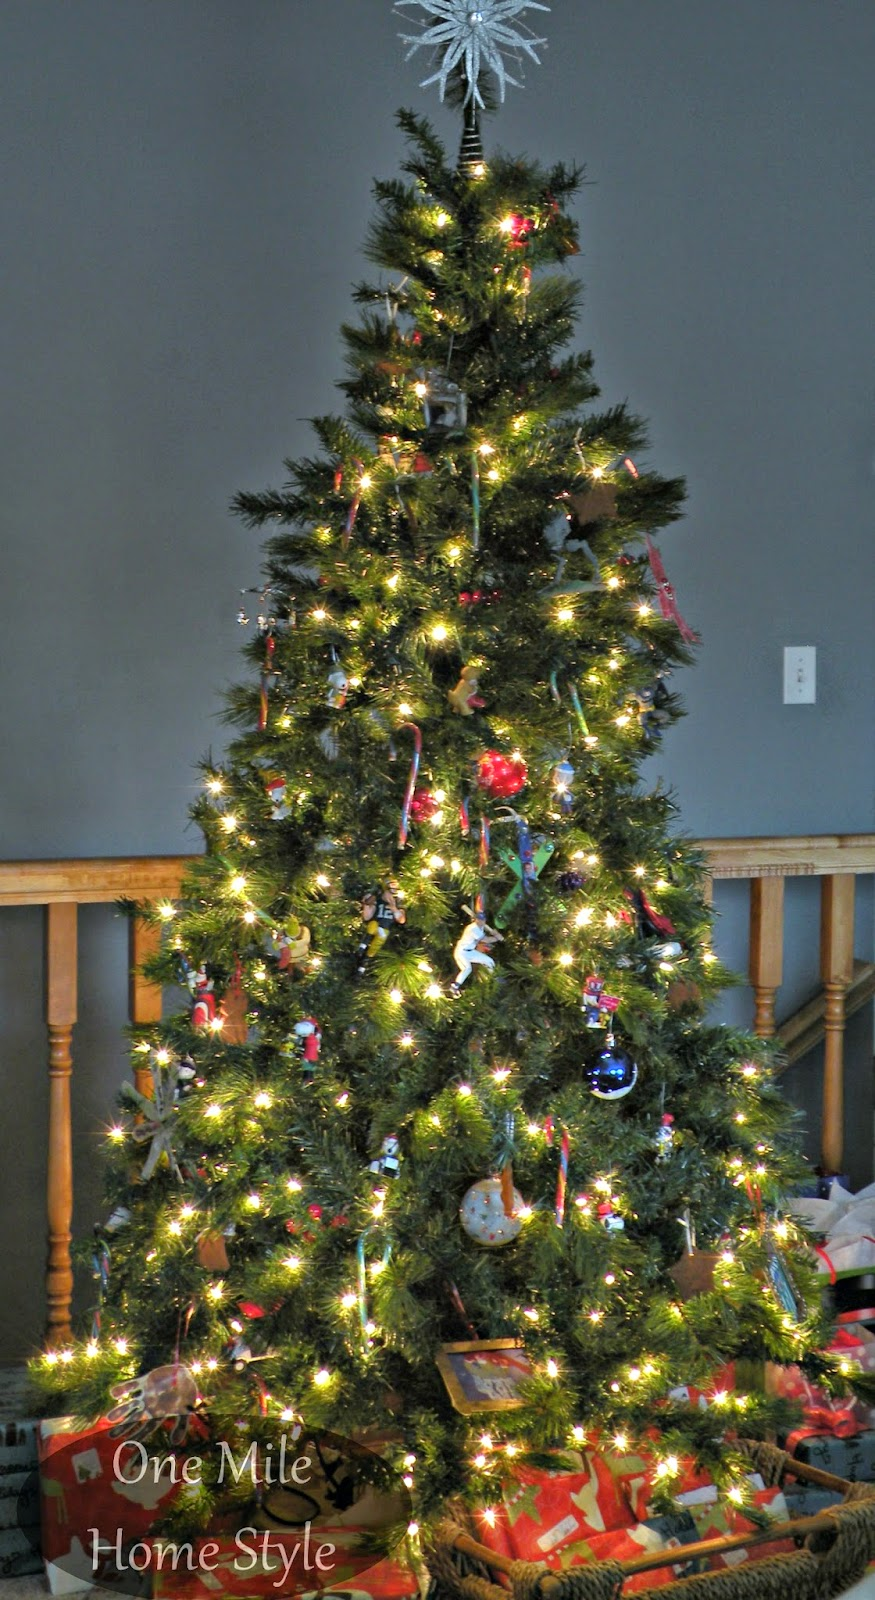 One Mile Home Style Christmas Tree 2014